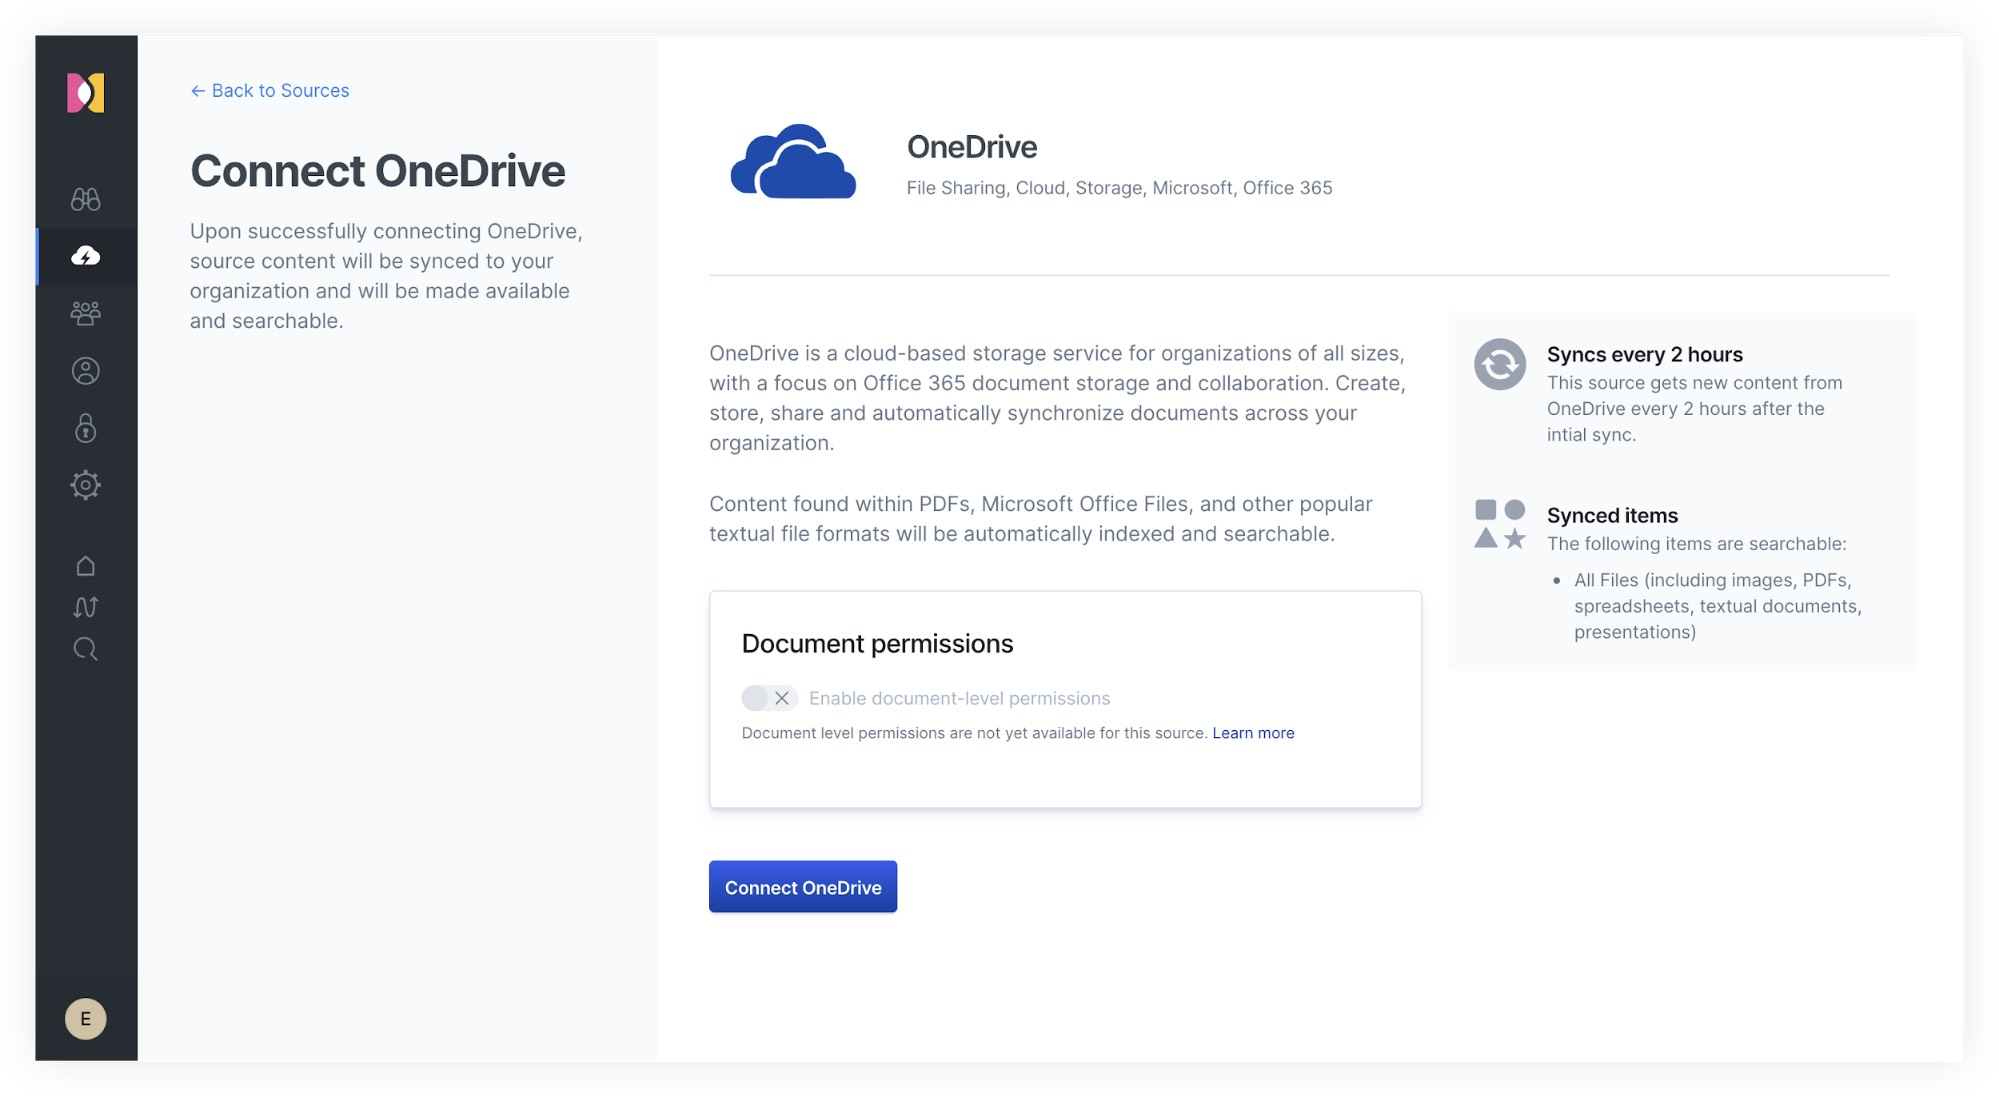 将 OneDrive 连接到 Workplace Search